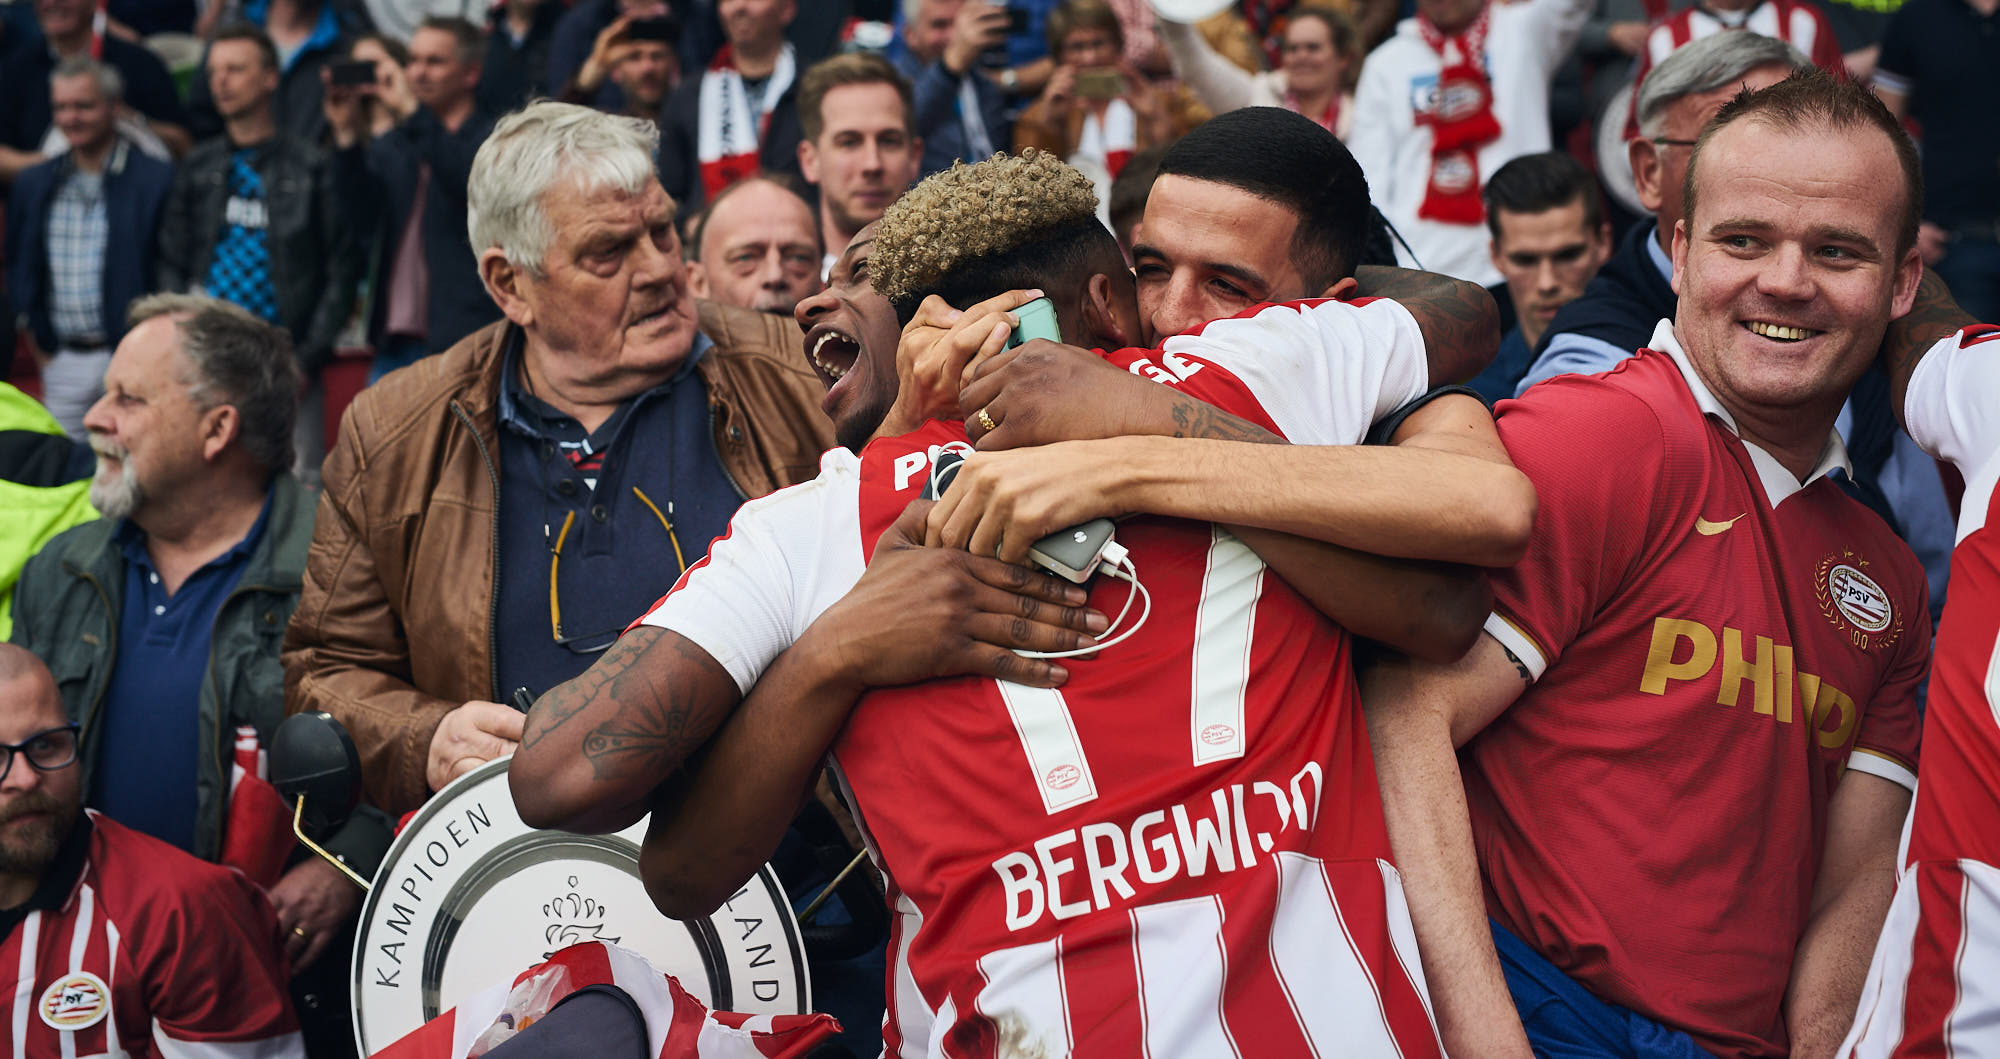 Football player Steven Bergwijn embraces family during PSV Eindhoven title celebrations